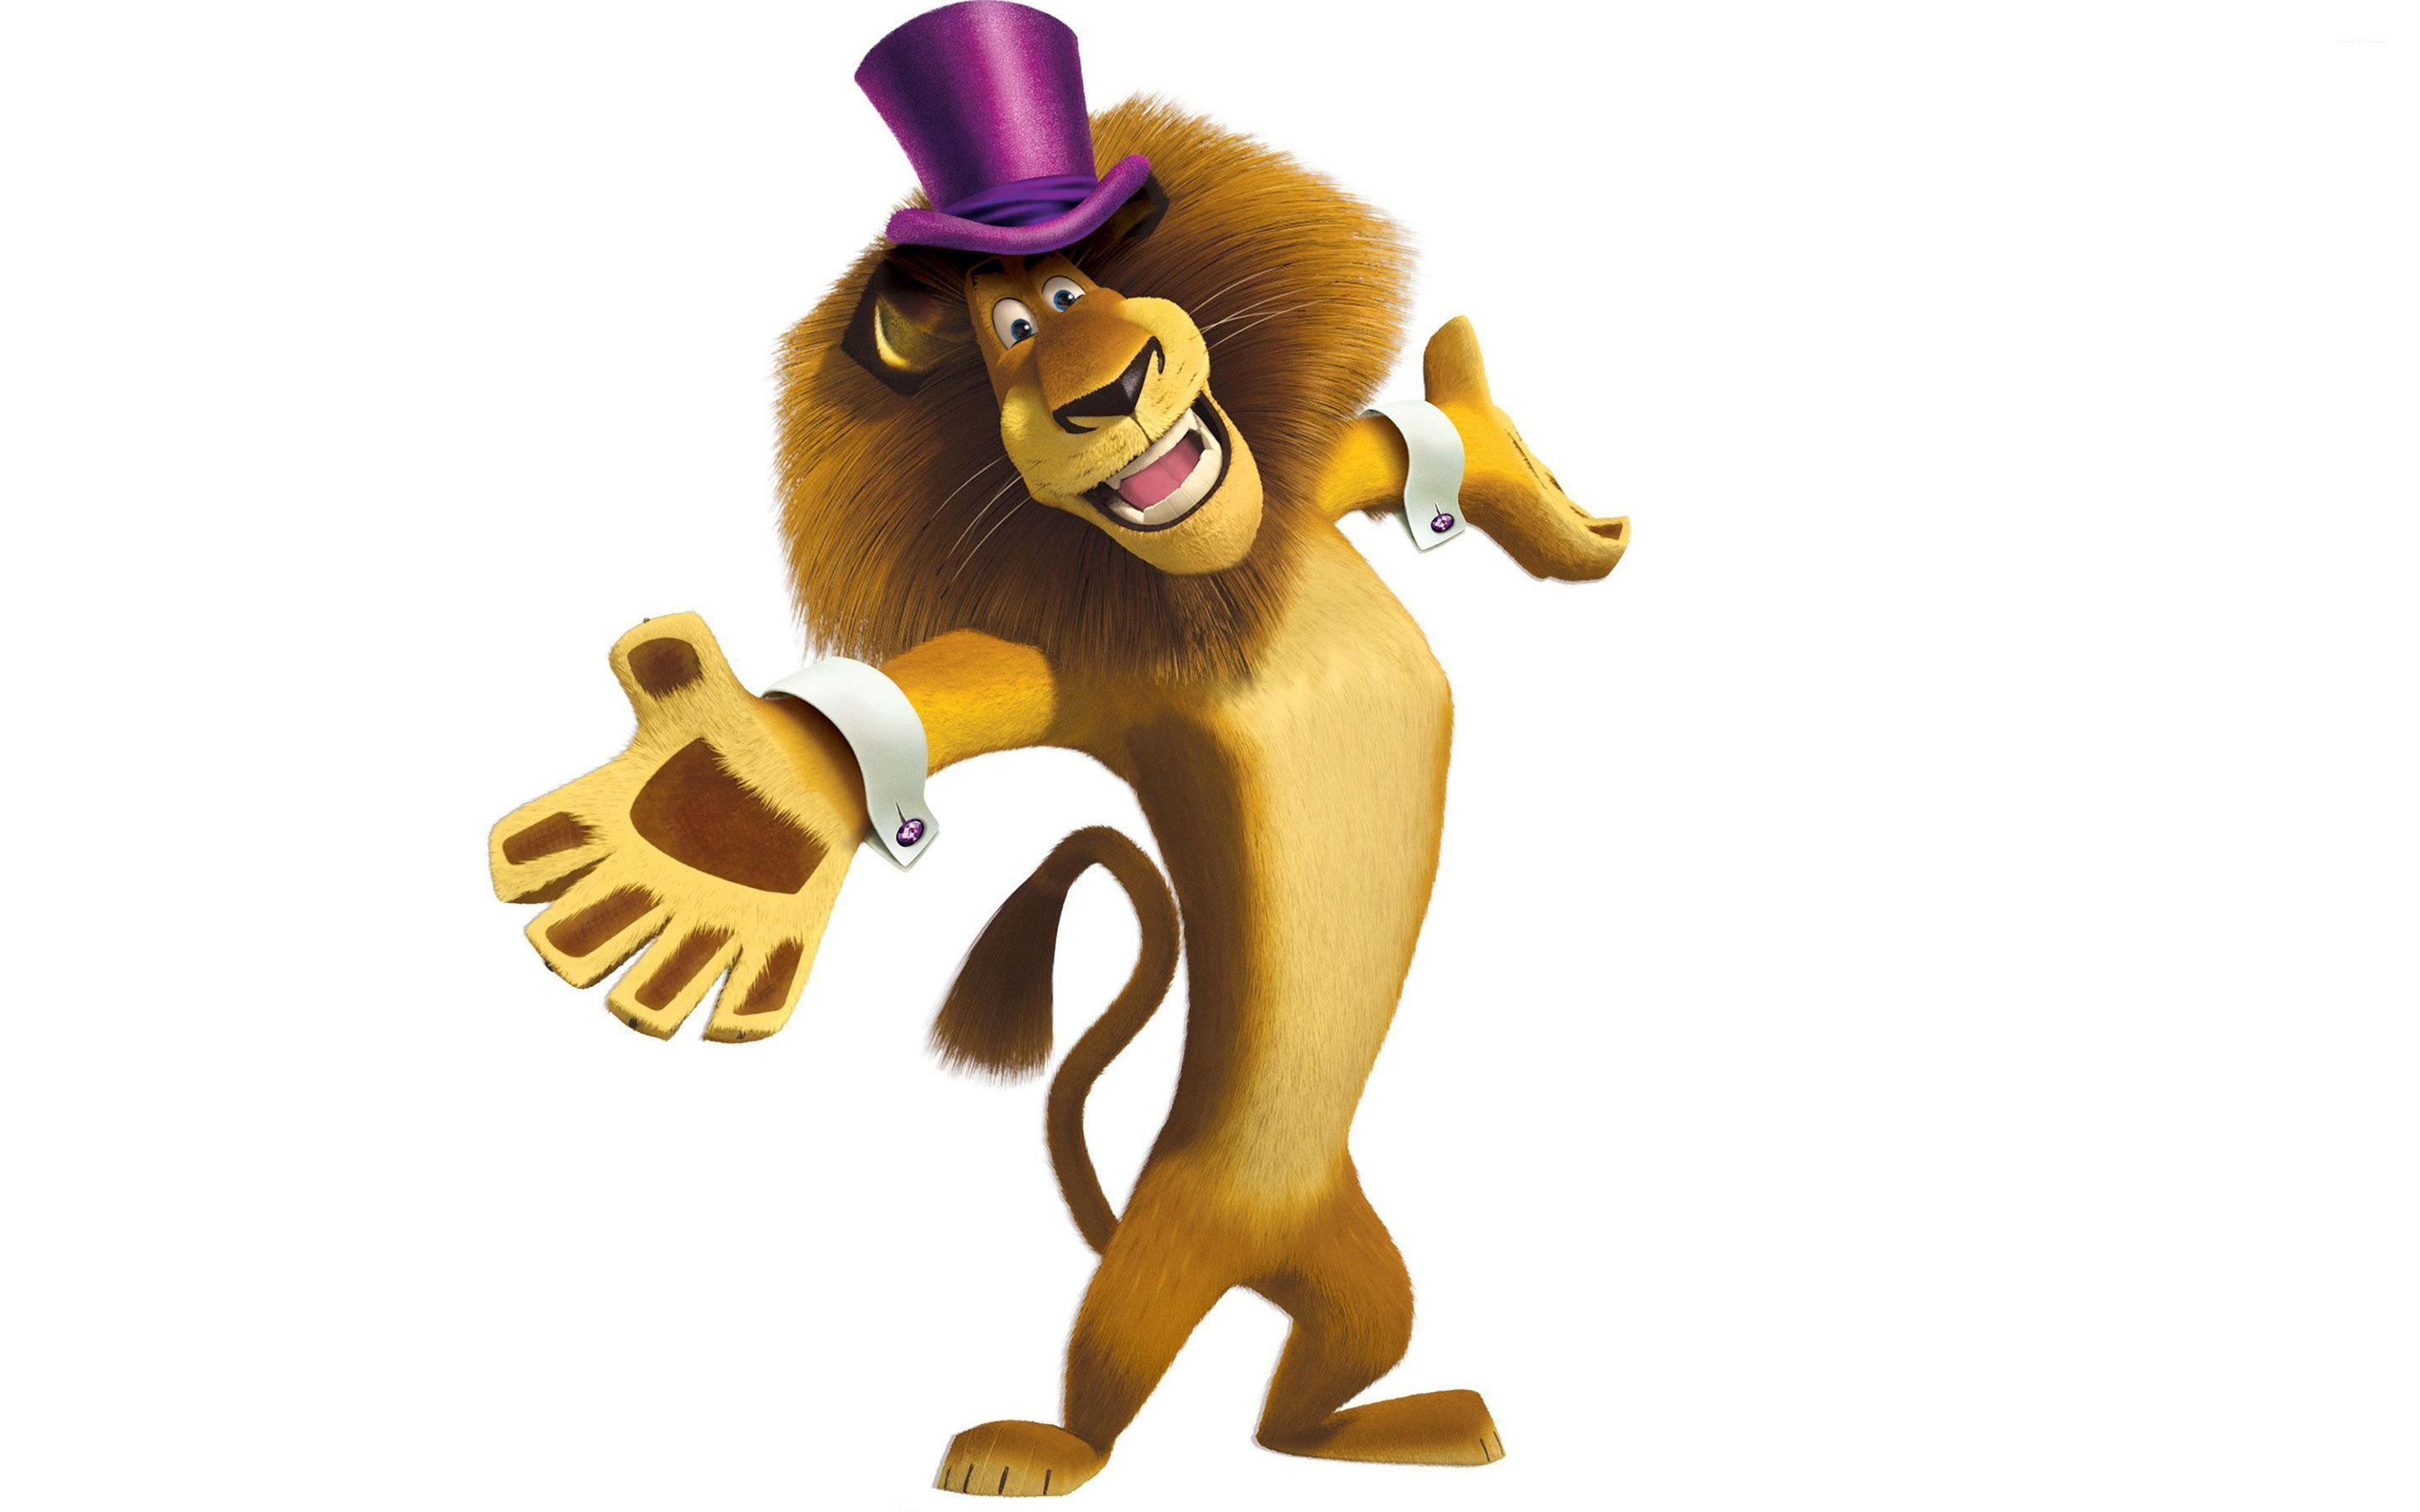 Madagascar 3 Cartoon Characters : Madagascar characters alex pixshark images